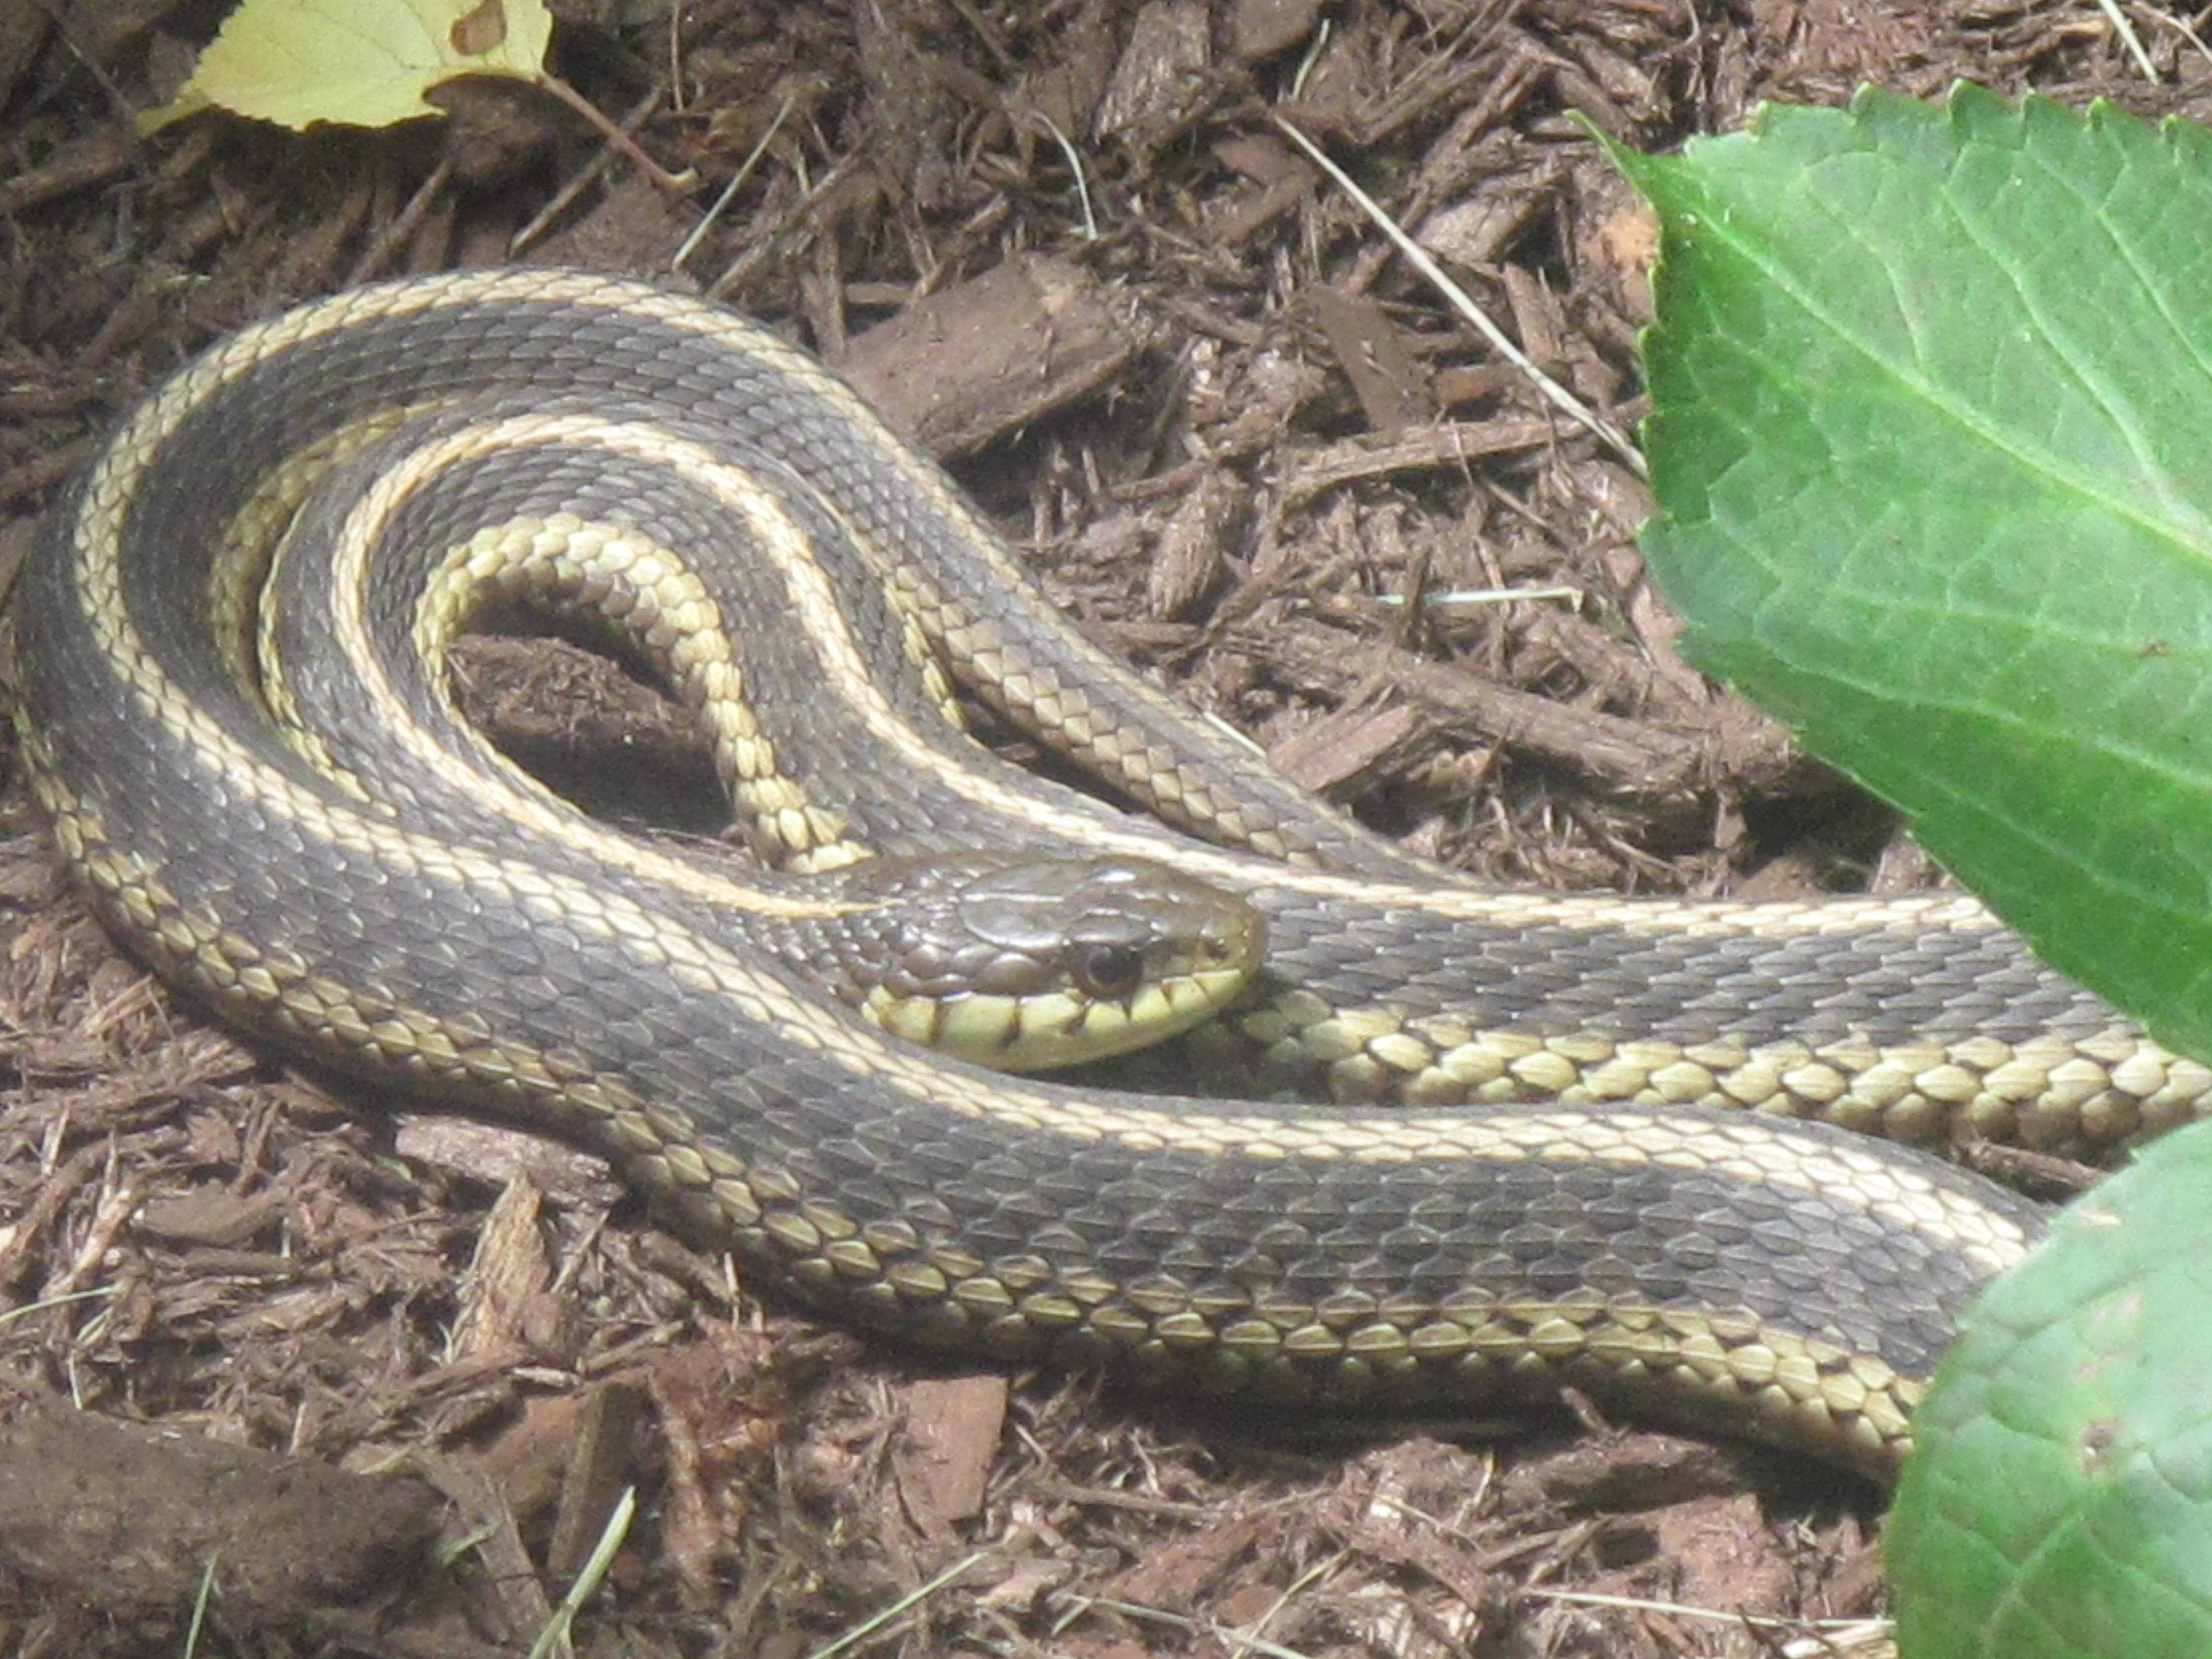 A Snake Sighting And Then A House For Sale | Acorns On Glen